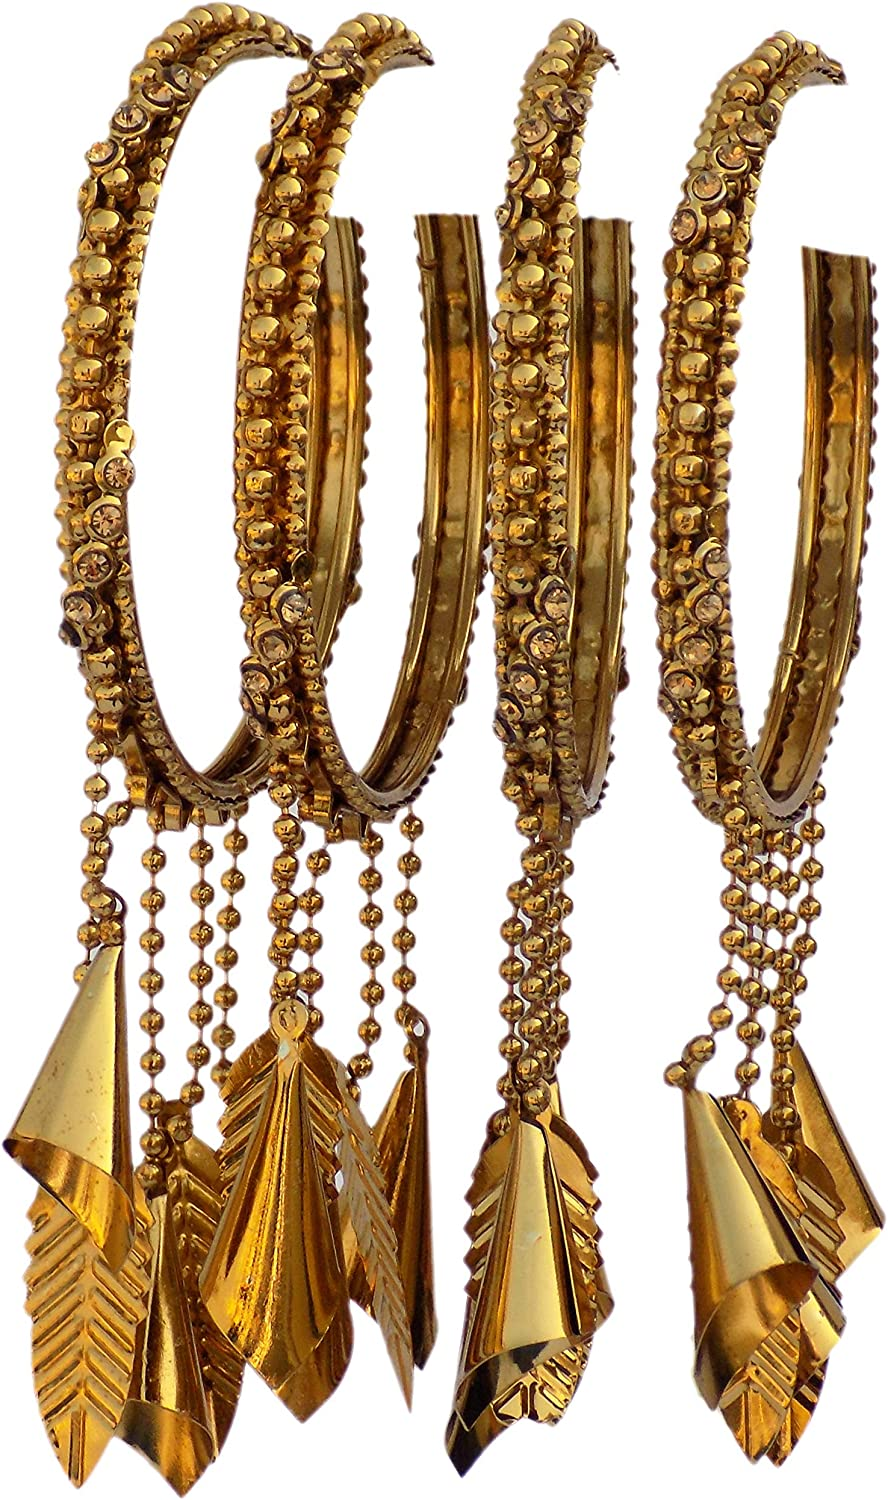 JD'Z Collection Indian Bangles Set Jewelry Latkan Bangle Bracelet for Womens & Girls, for Wedding,Party Bangles Bridal Kada 4pc